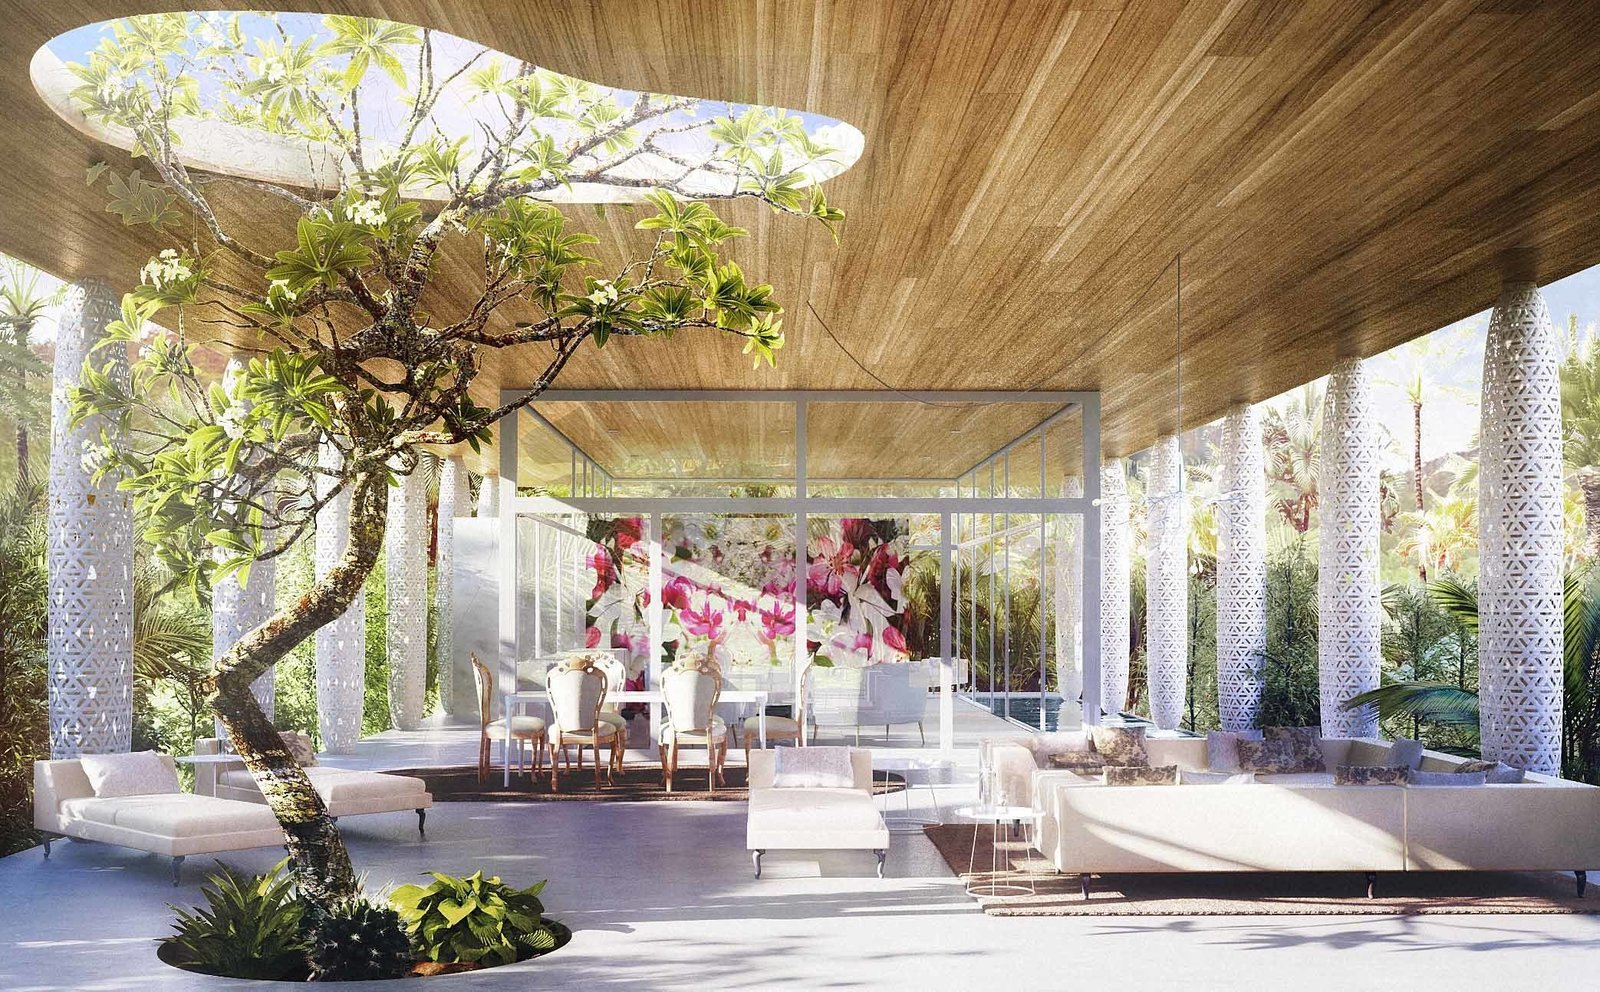 Eden by Marcel Wanders  Never formally trained as an architect, Wanders unveils his very first house, and it's distinguished by its emphasis on transparency. A small portion of the space is enclosed by glass walls. The flat roof is upheld by white, ornately decorated columns.